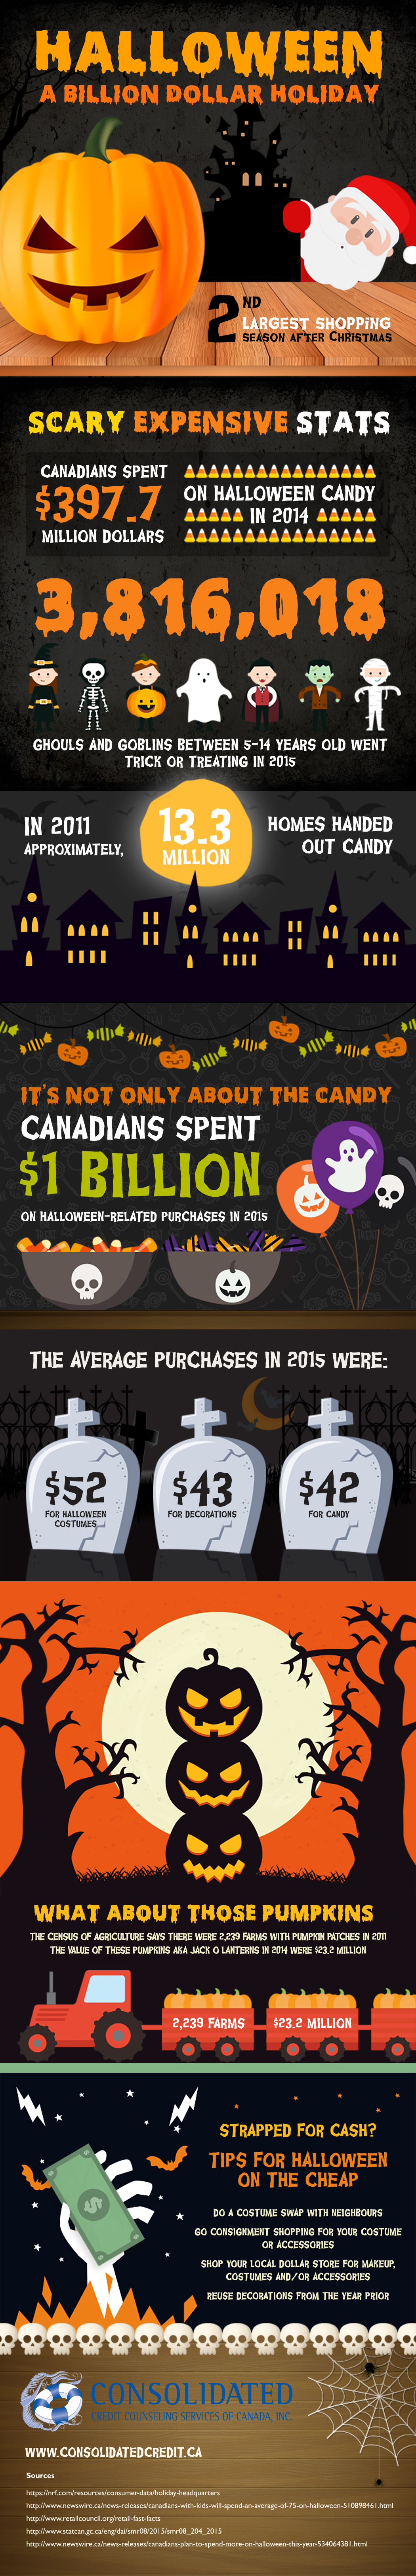 Creepy costs of Halloween